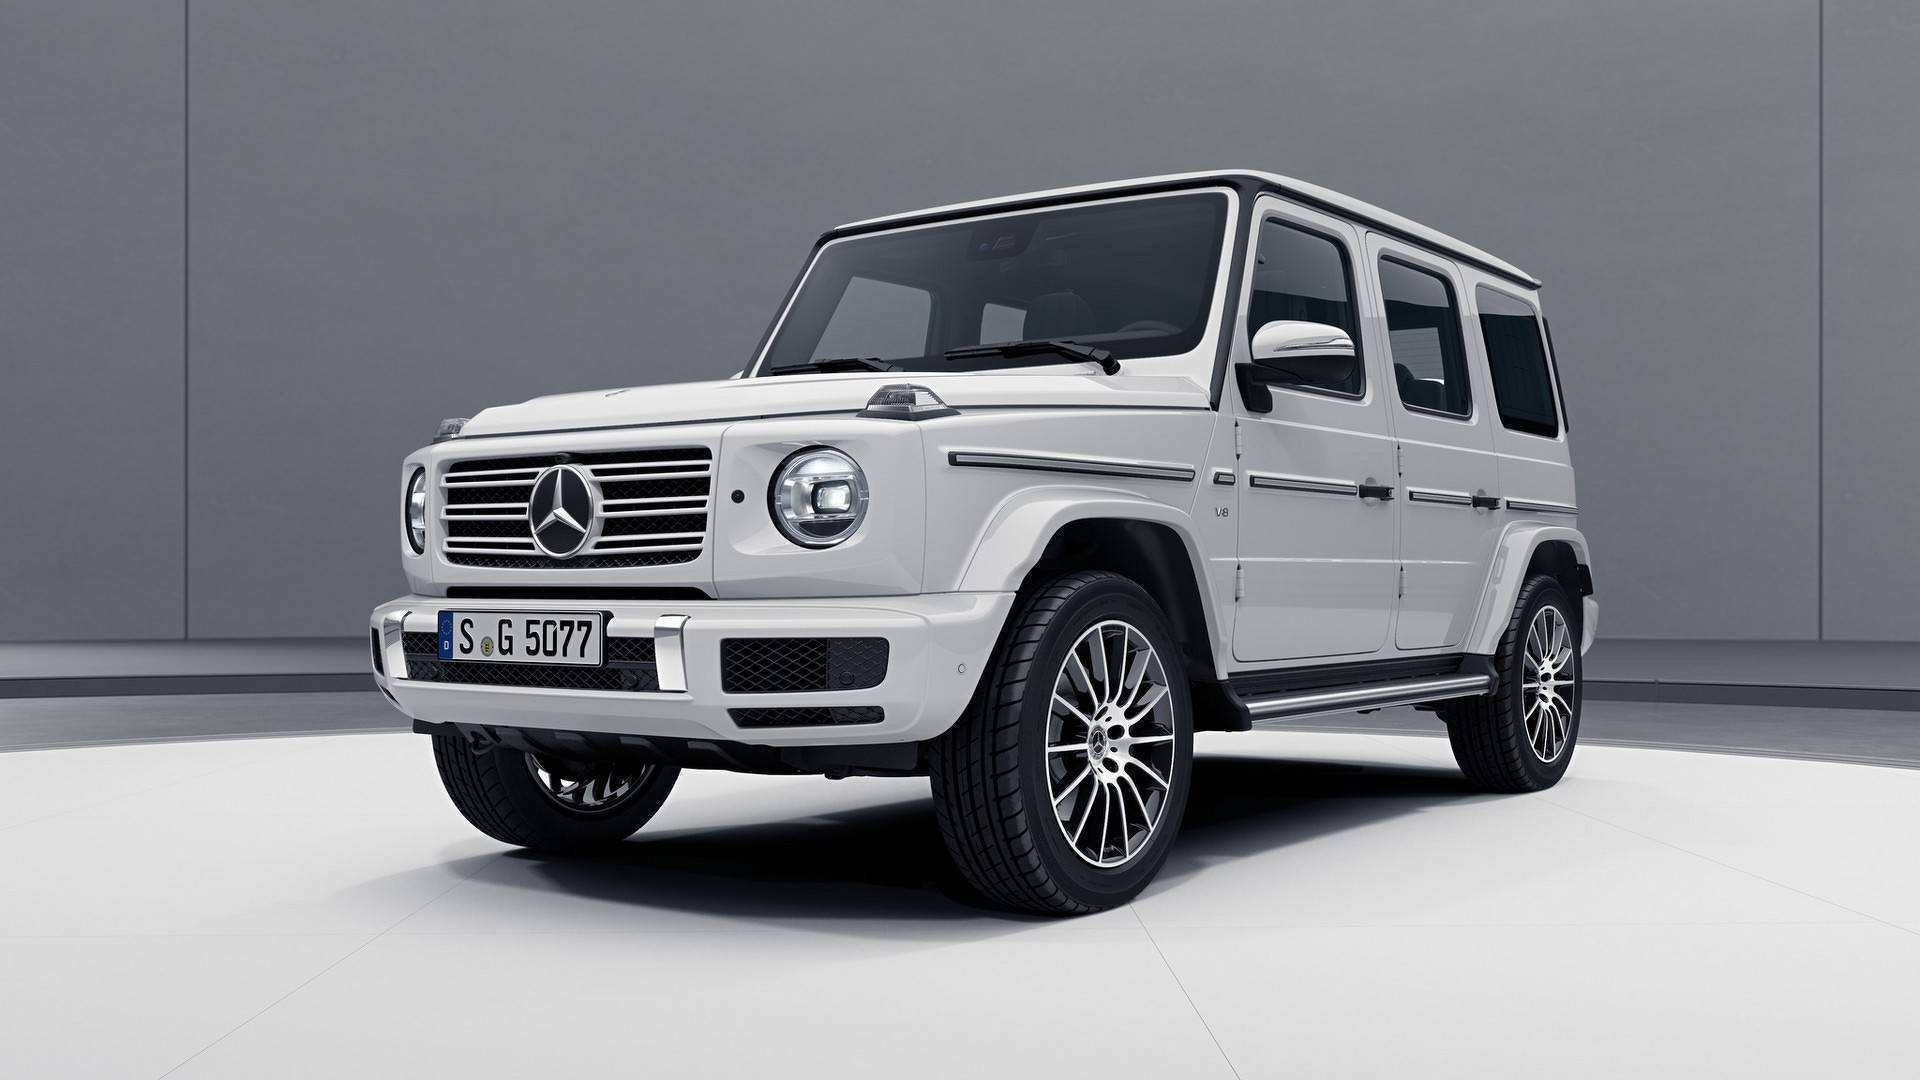 32 Best Review Mercedes G 2020 Exterior Date Pricing by Mercedes G 2020 Exterior Date